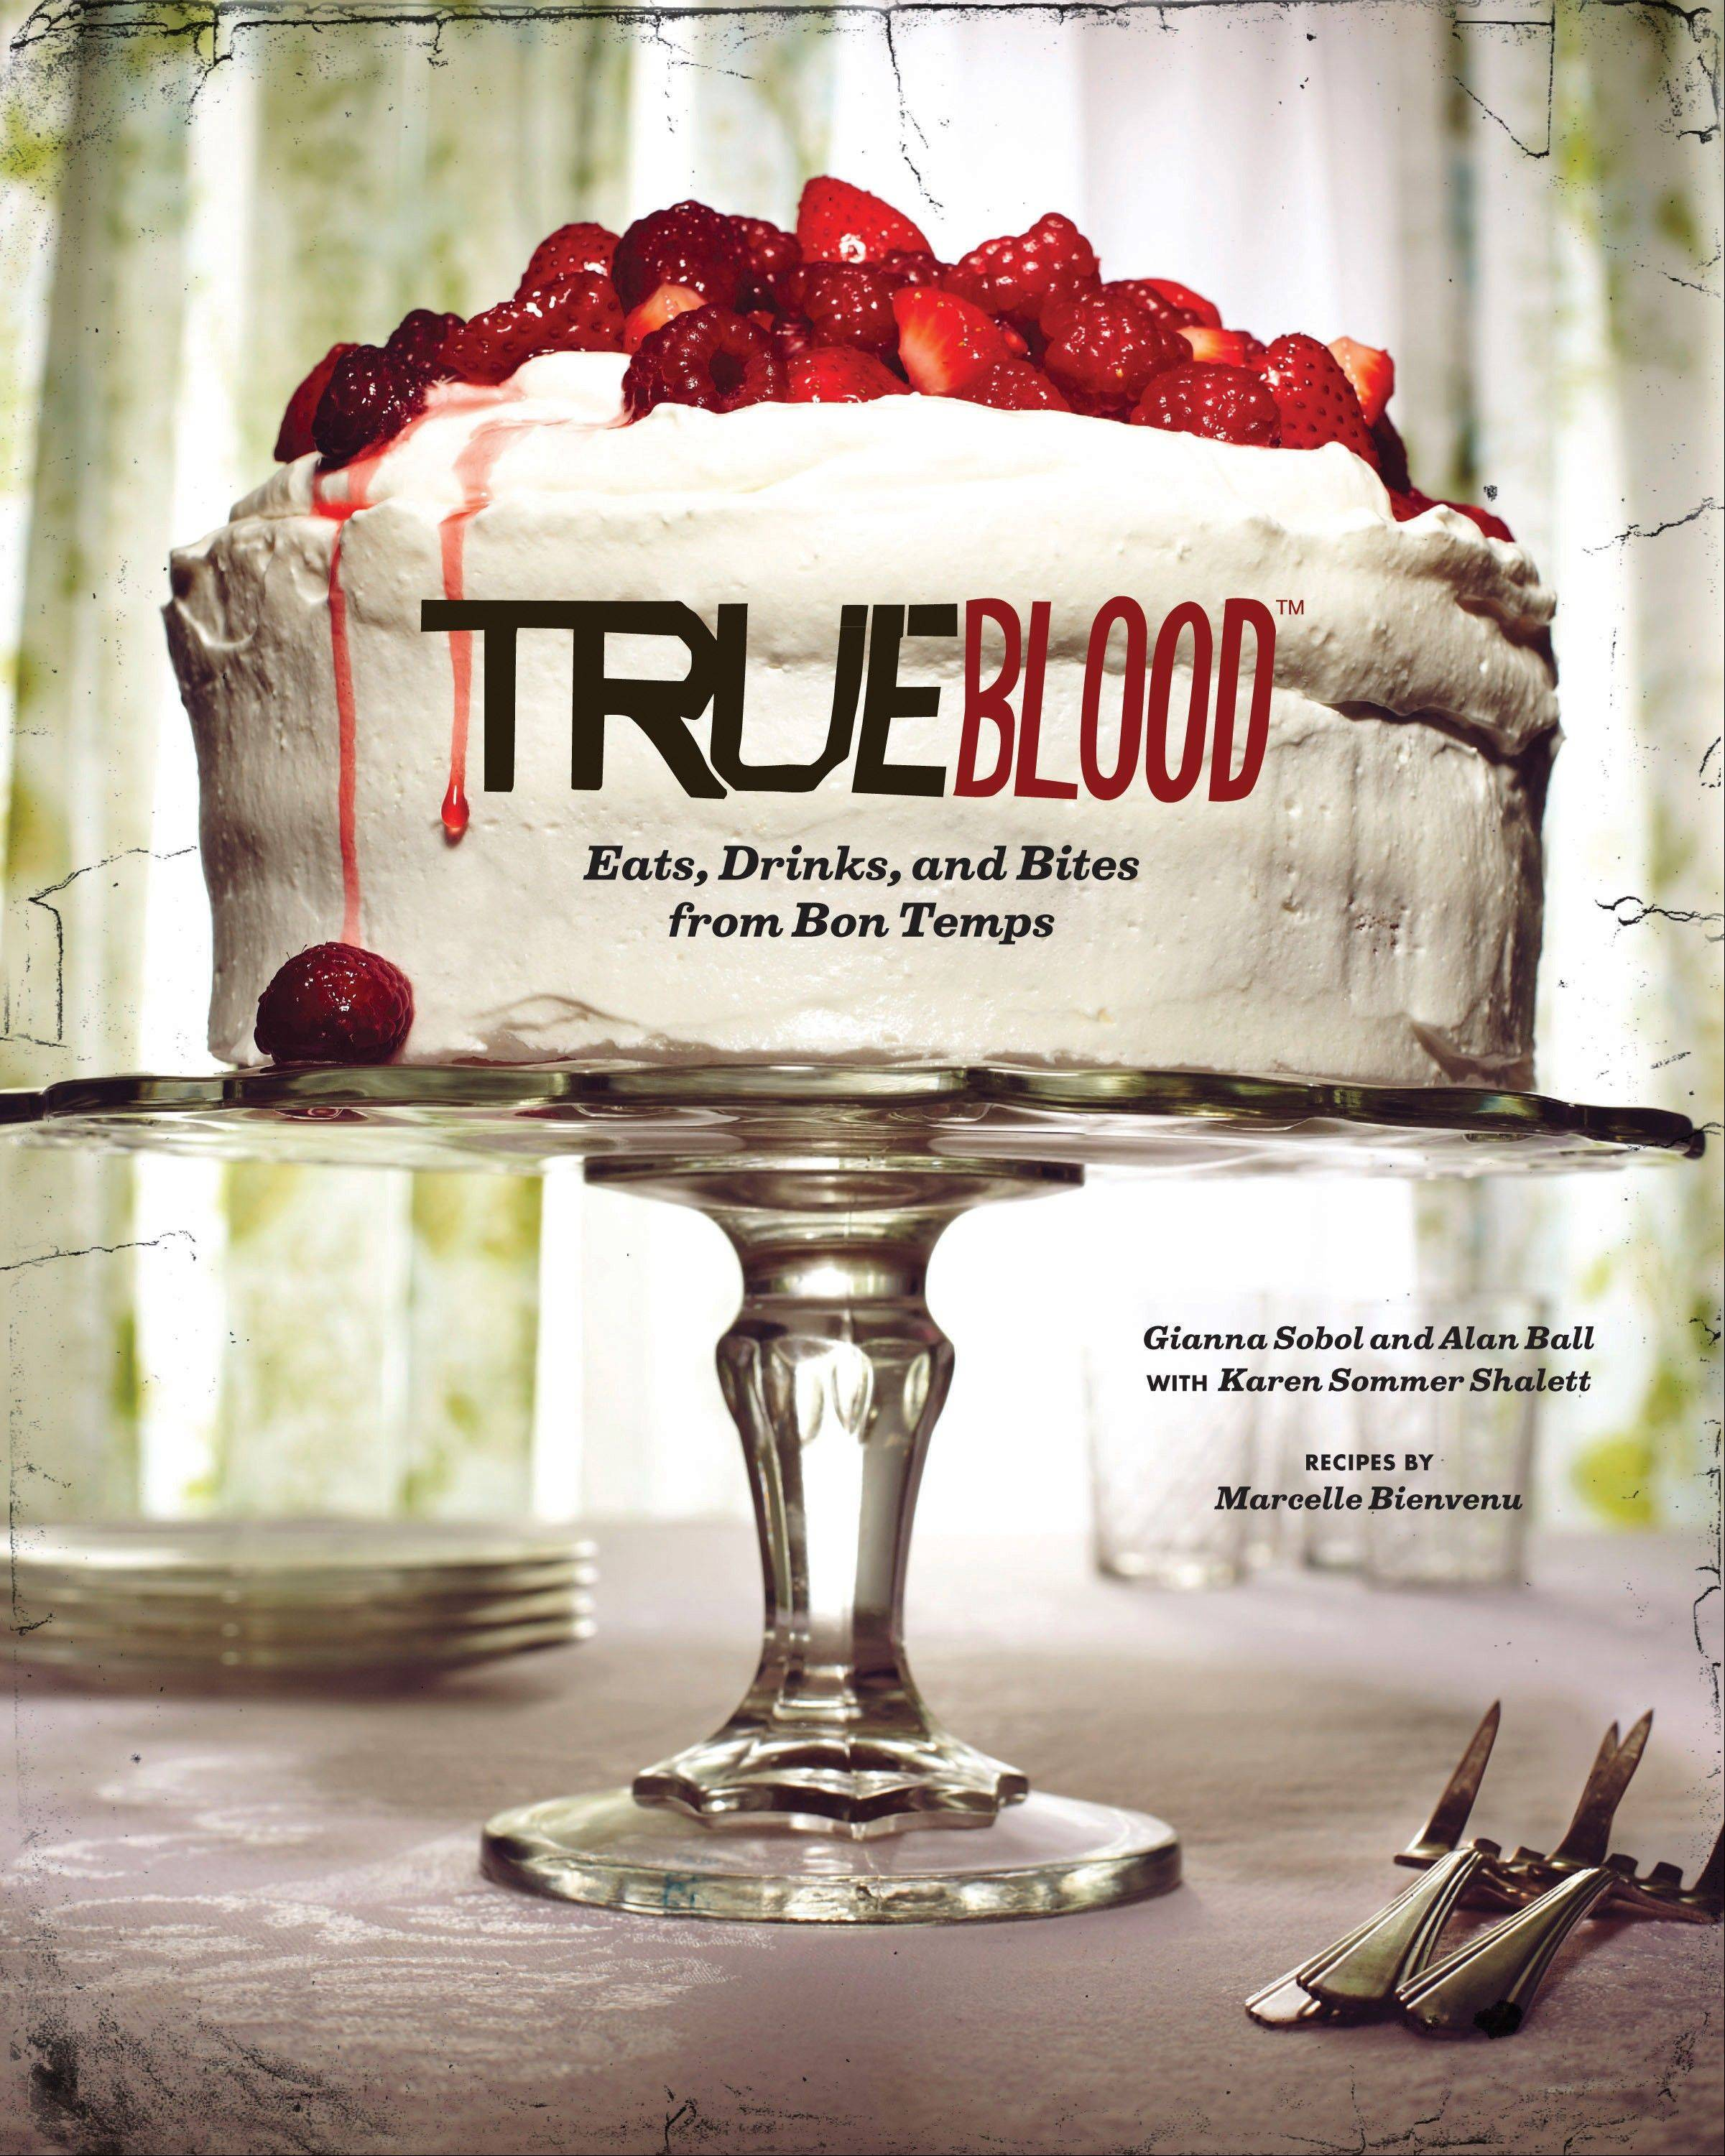 """True Blood: East, Drinks, and Bites from Bon Temps"" by Marcelle Bienvenu"